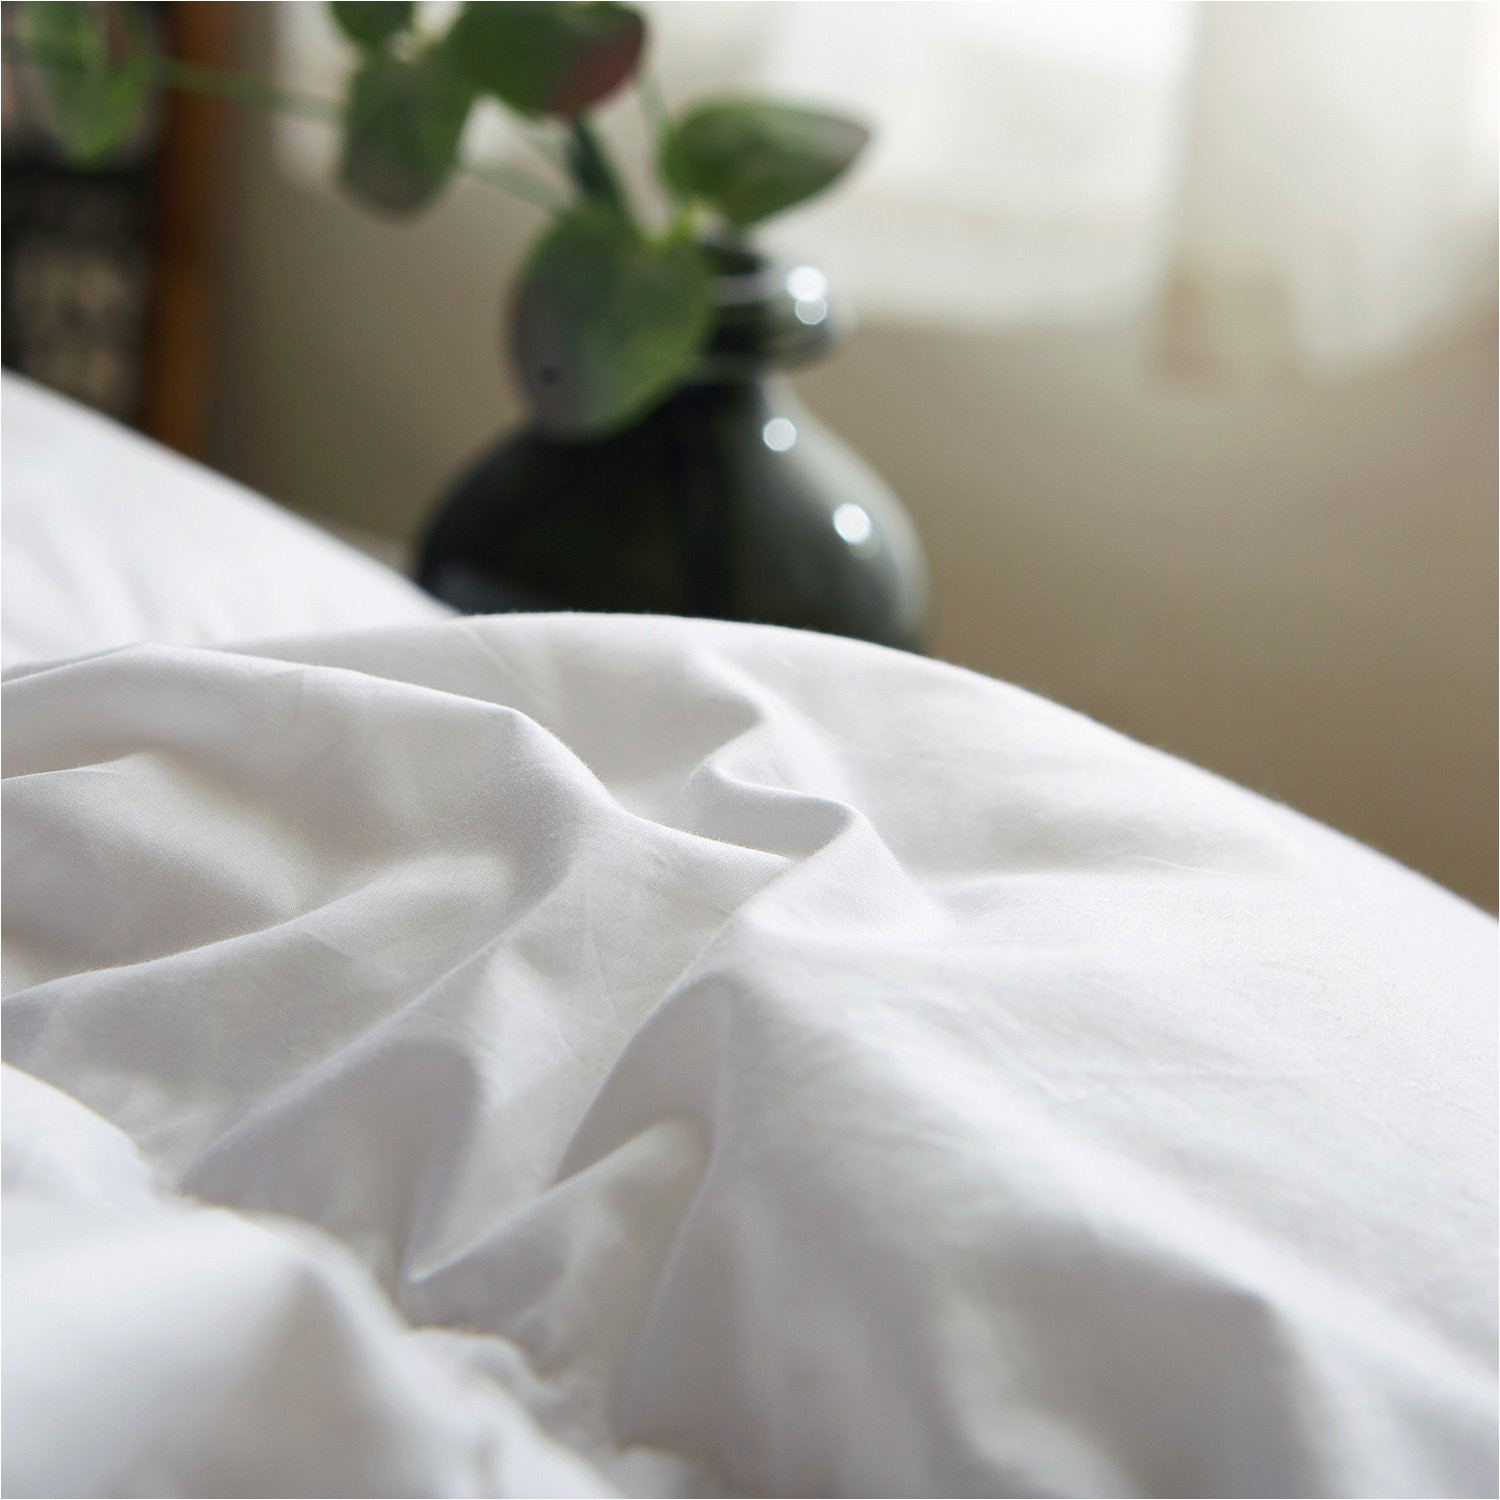 amazon com globon white goose down comforter queen full size 50 oz fill weight 700 fill power 400 thread count 100 cotton shell heavy weight for